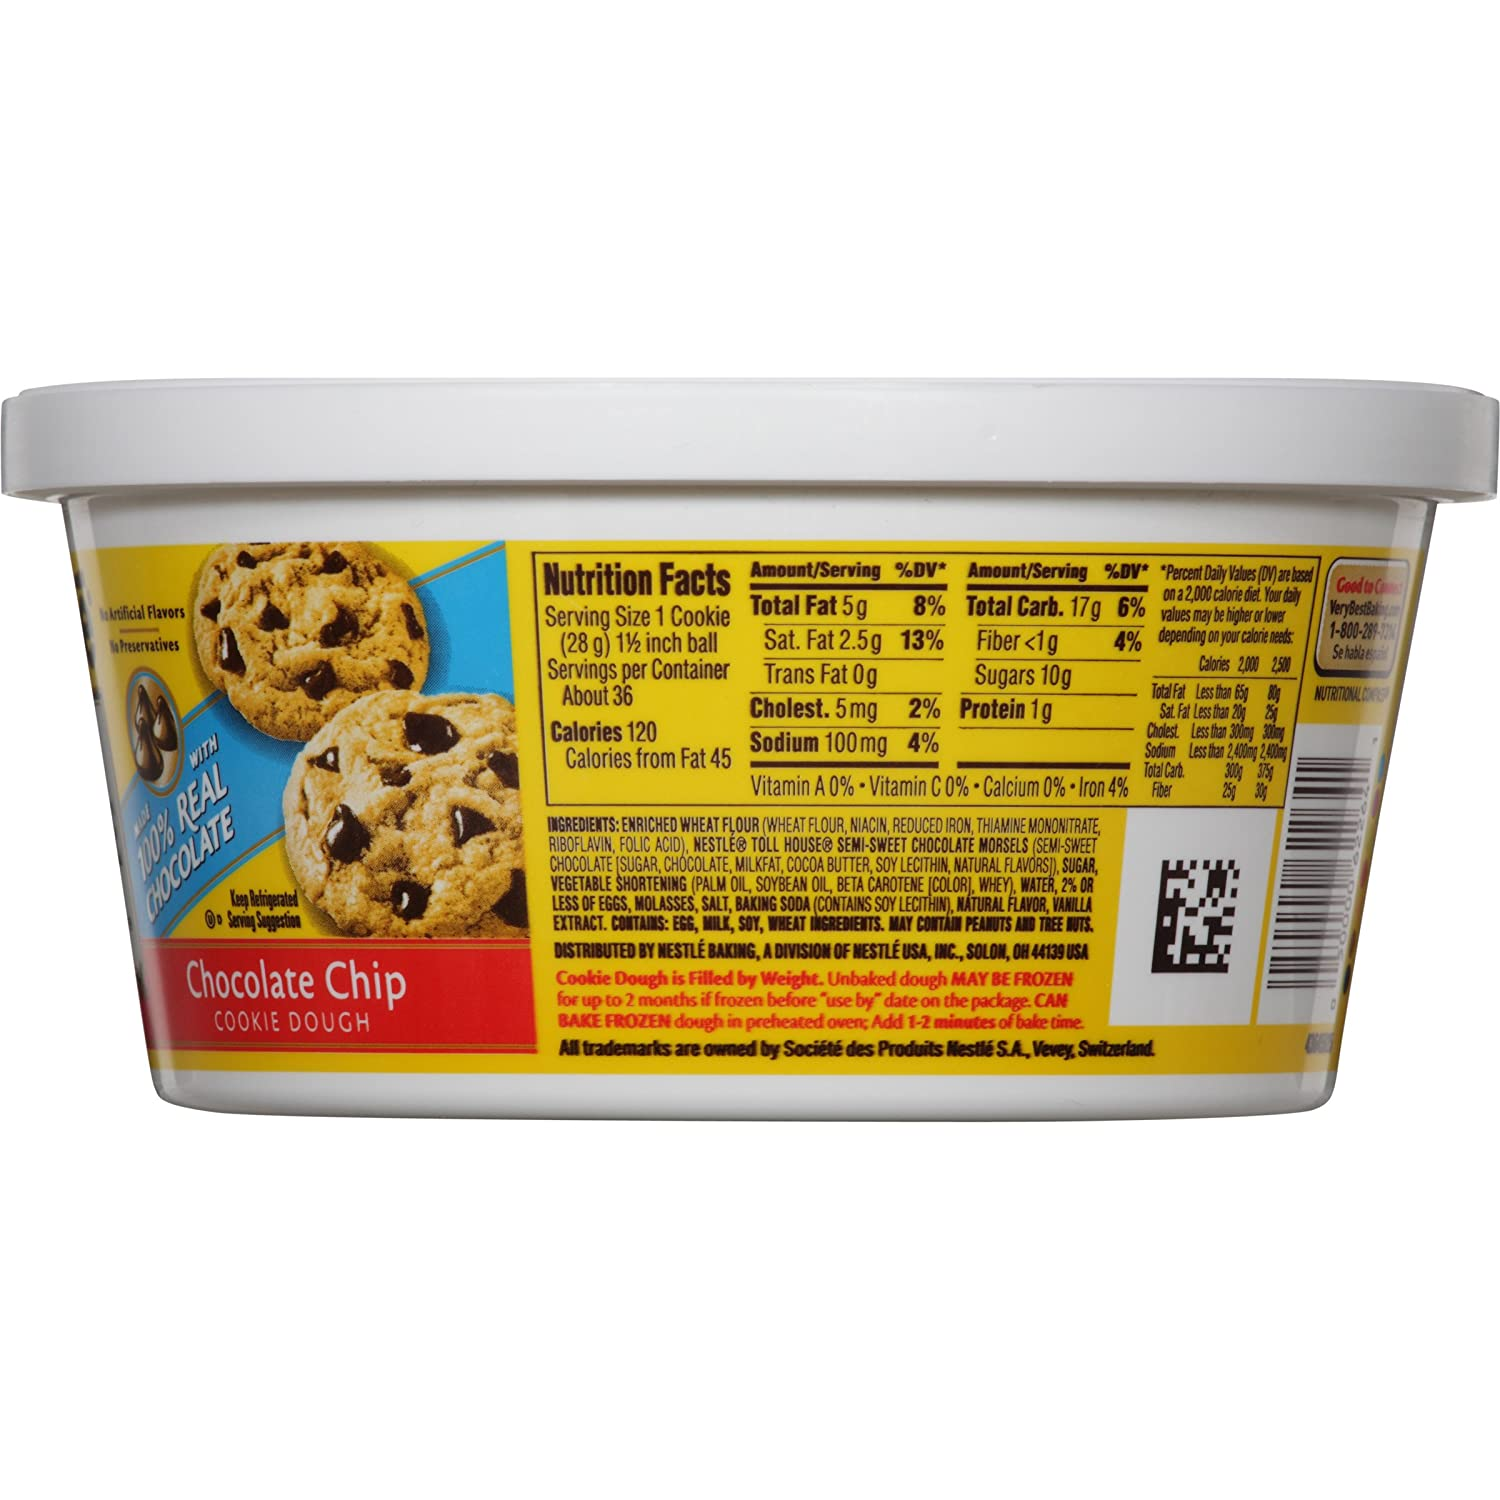 Toll House, Chocolate Chip Cookie Dough Tub, 36 oz: Amazon.com ...